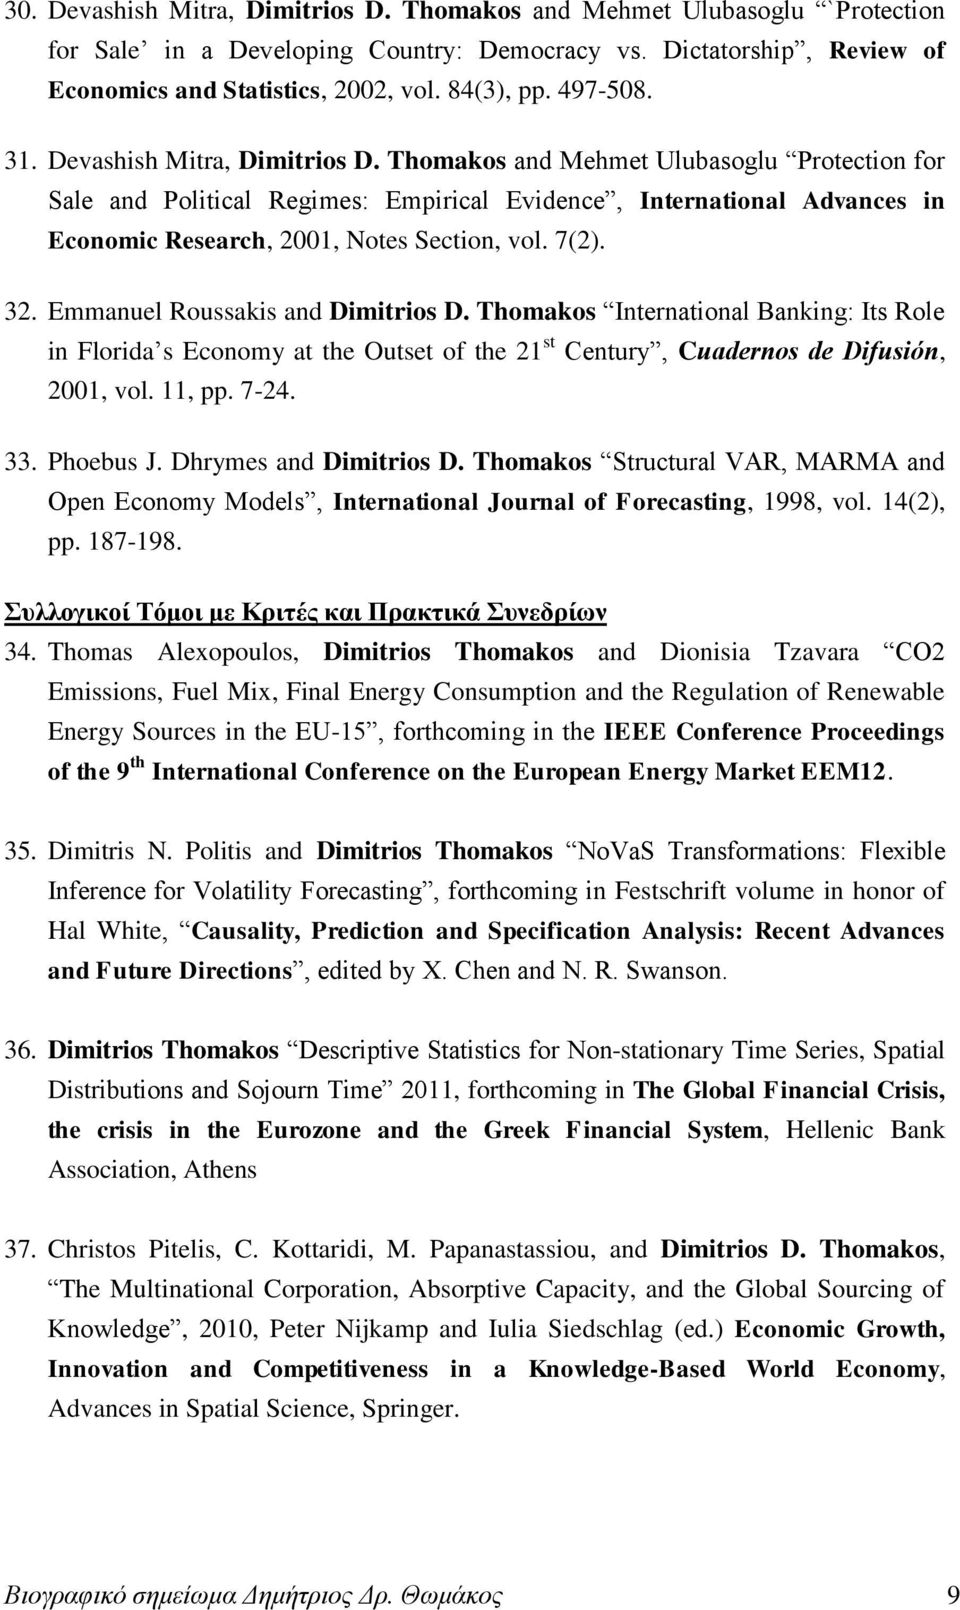 Thomakos and Mehmet Ulubasoglu Protection for Sale and Political Regimes: Empirical Evidence, International Advances in Economic Research, 2001, Notes Section, vol. 7(2). 32.